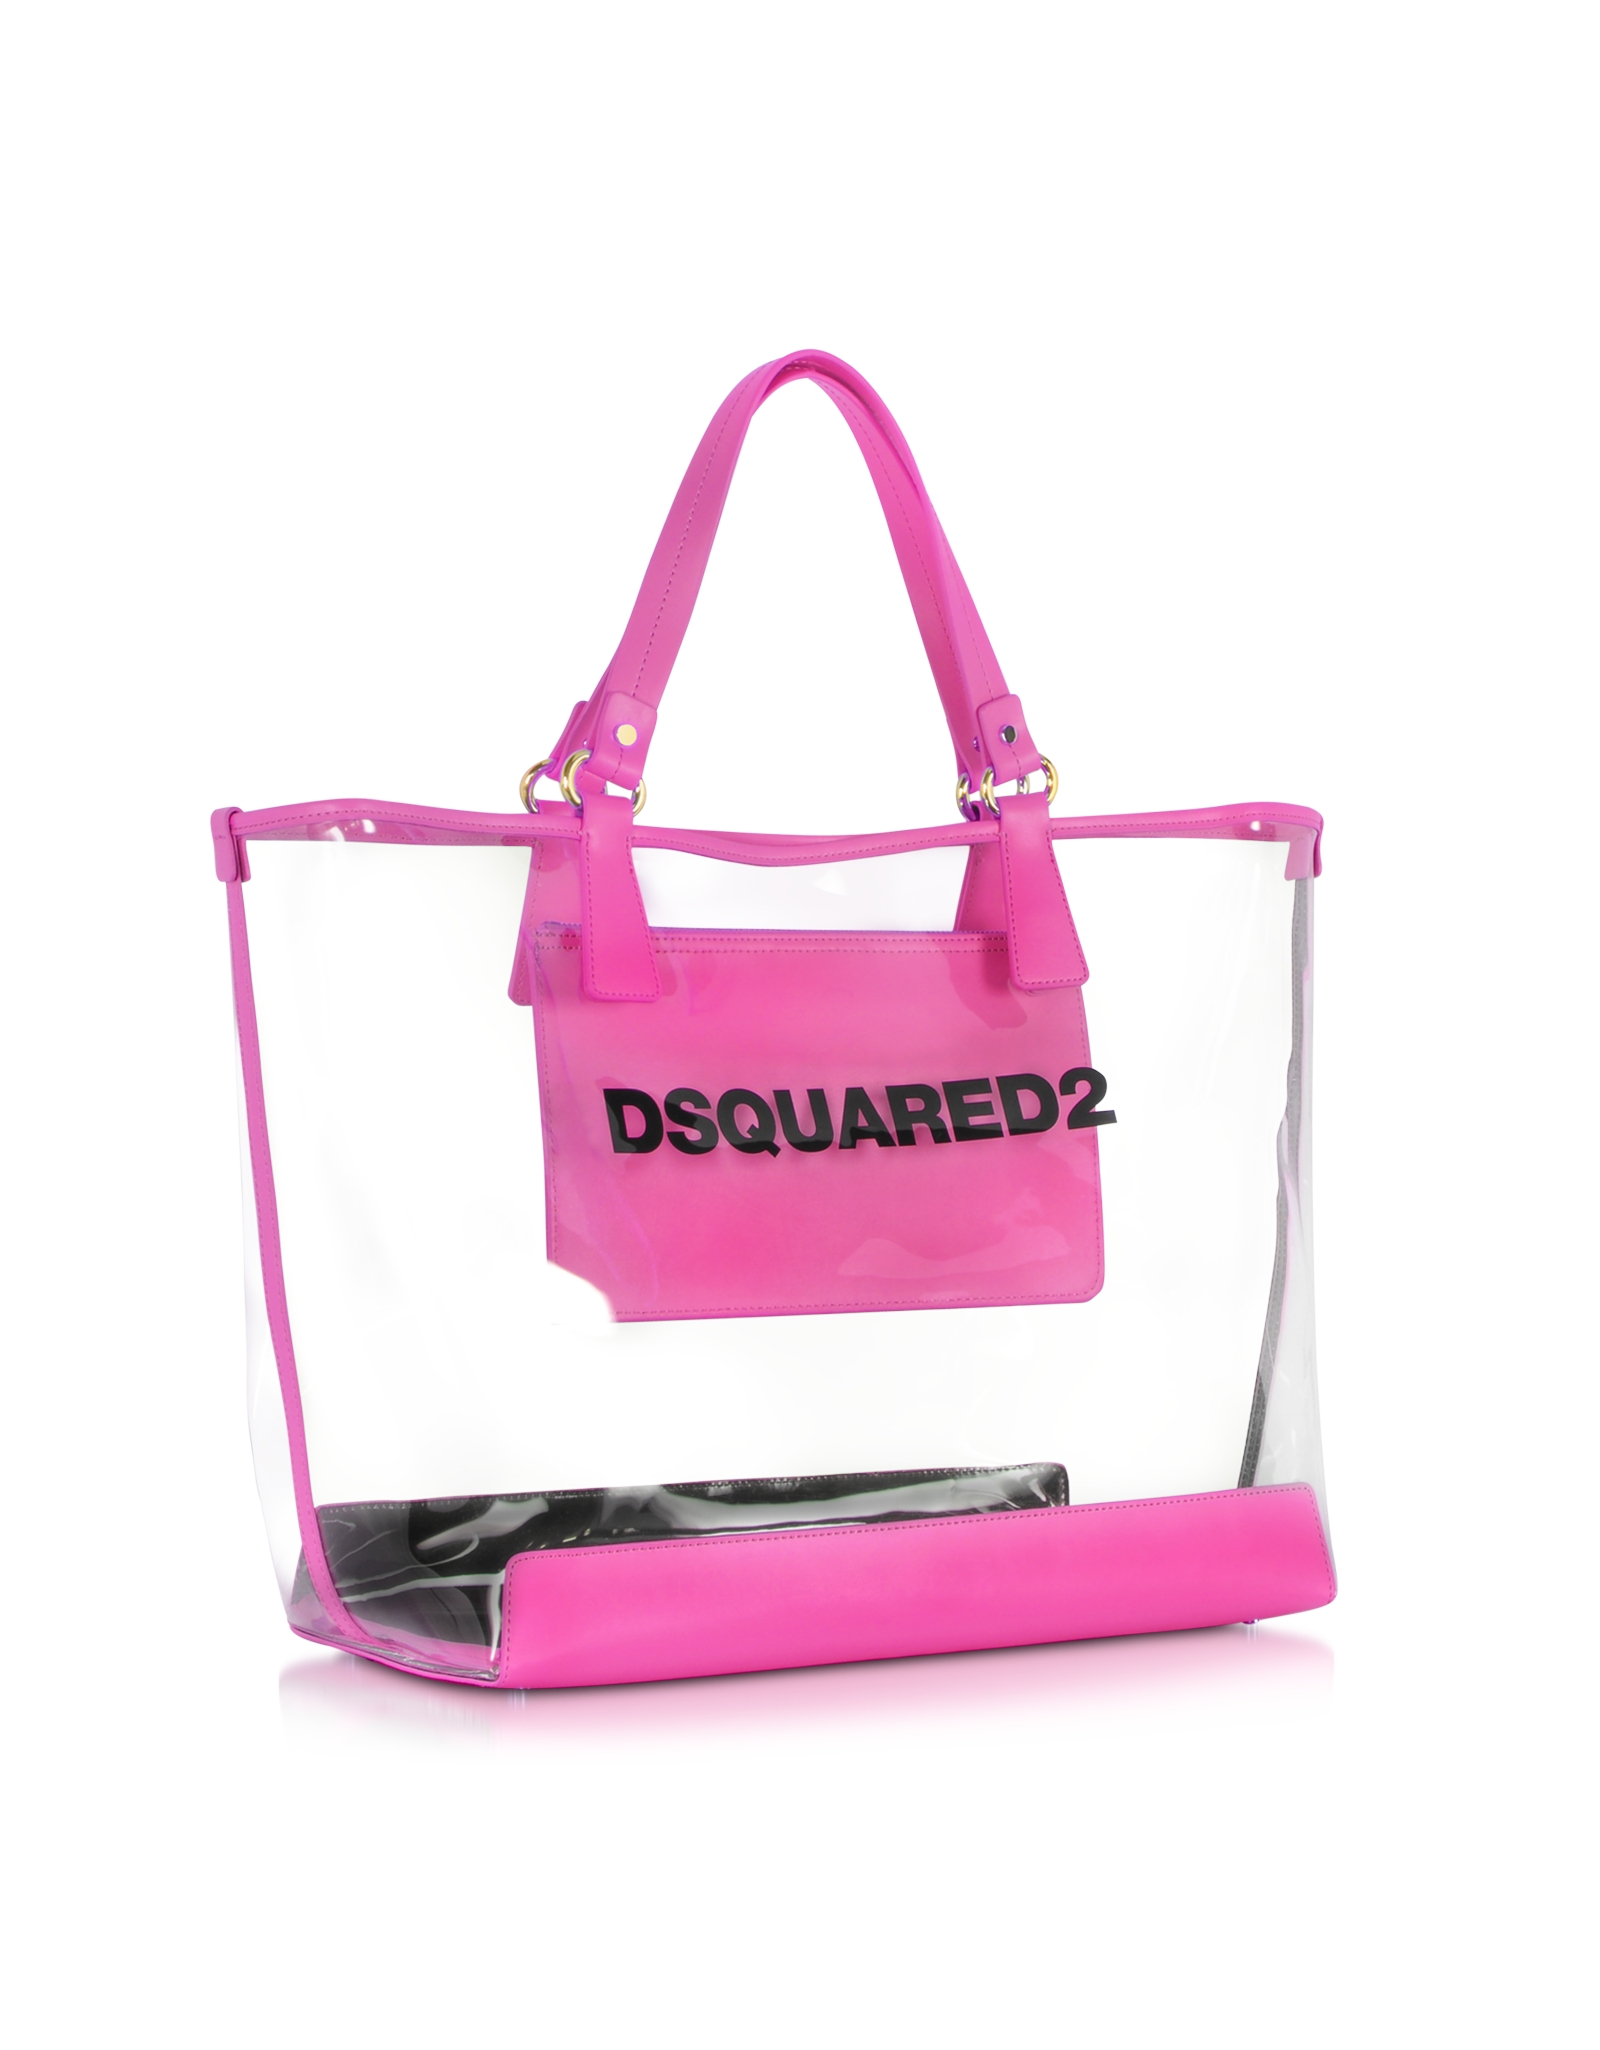 Dsquared² Mykonos Transparent Pvc And Fuchsia Tote | Lyst